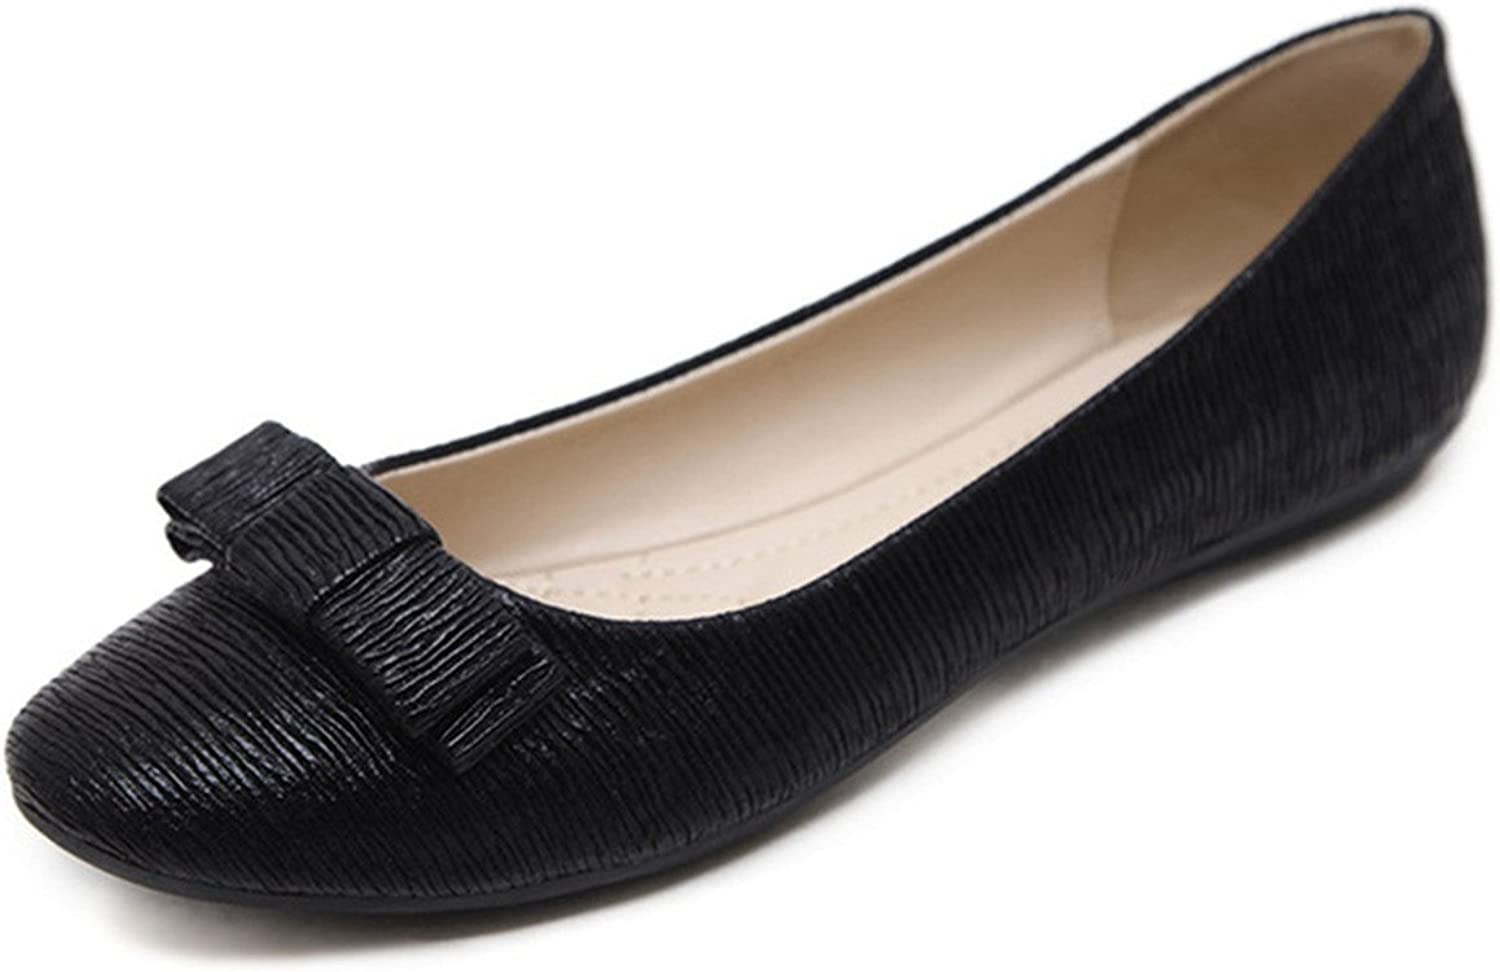 York Zhu Ballet Flats for Women, Bowknont Pointed Toe Flats, Ladies Dressy shoes